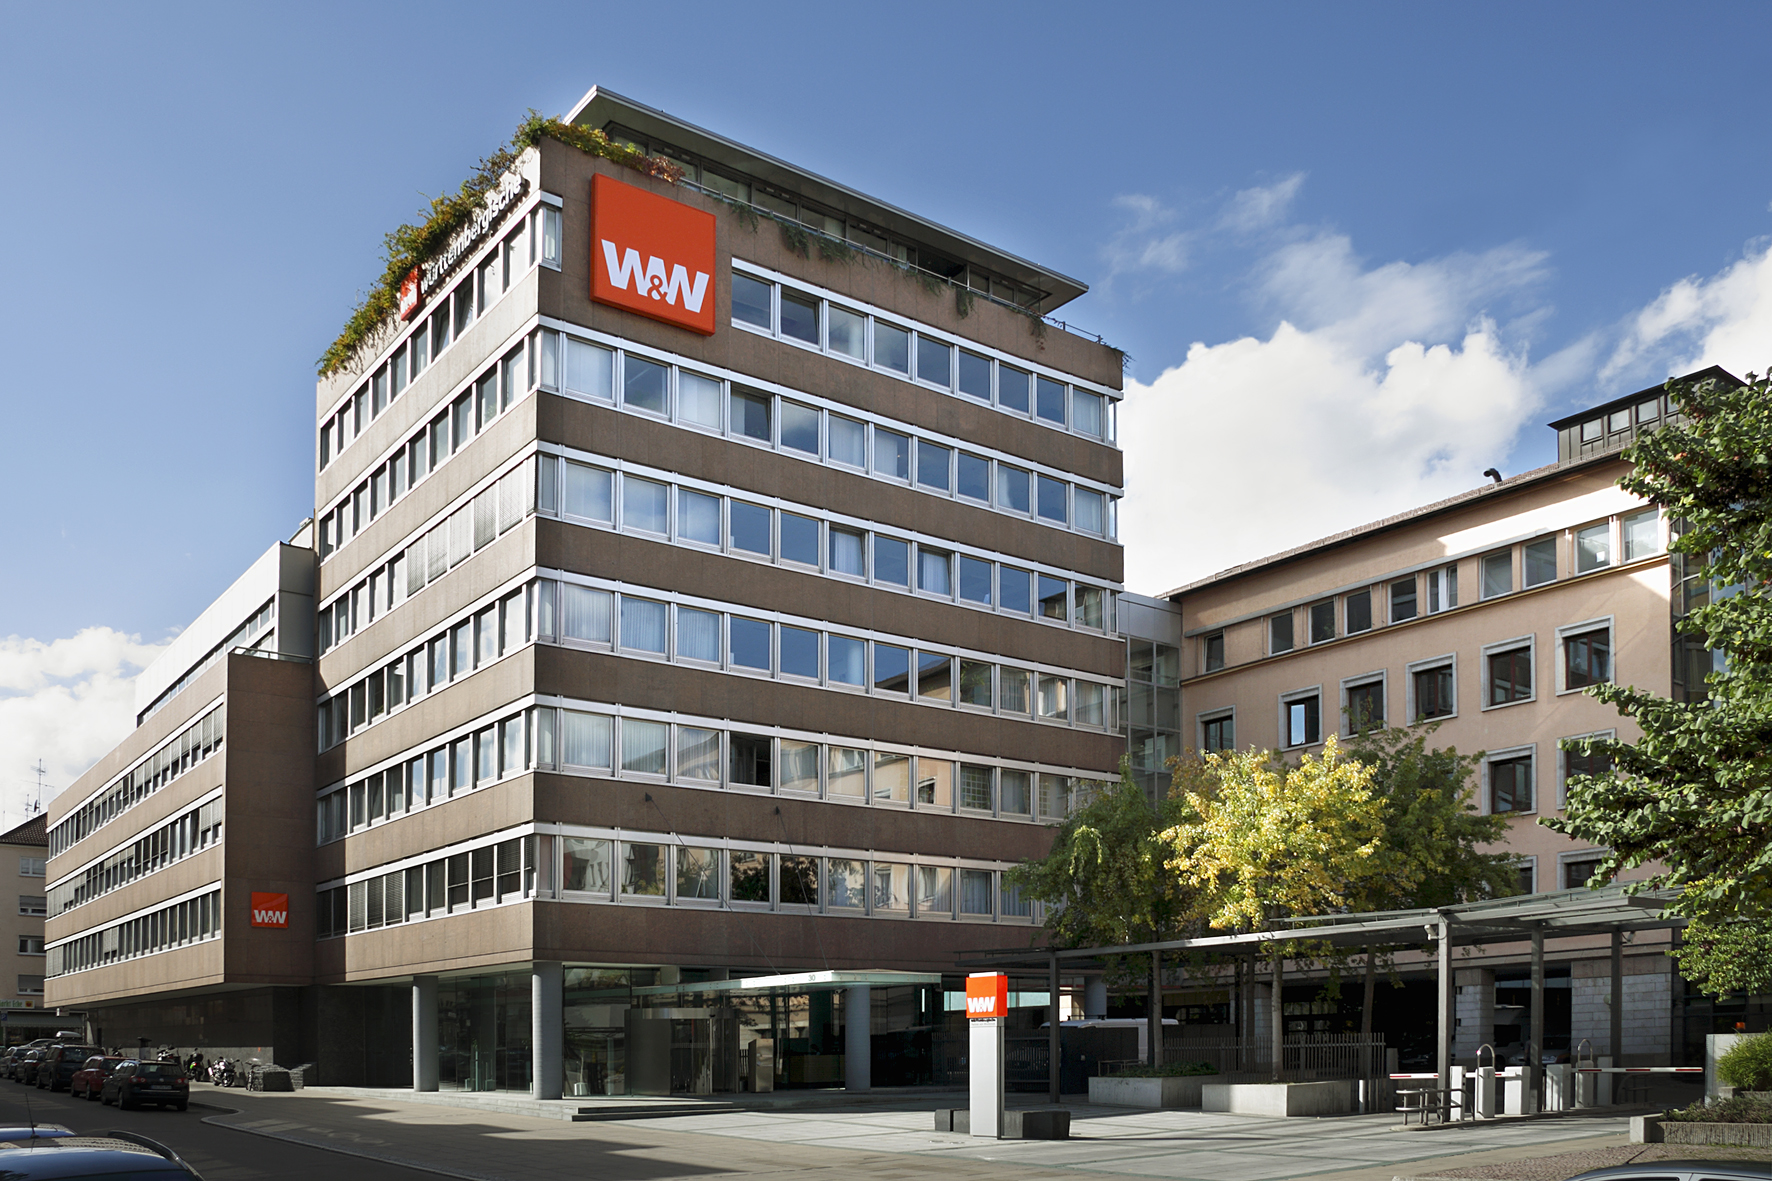 The Companies in the W&W Group